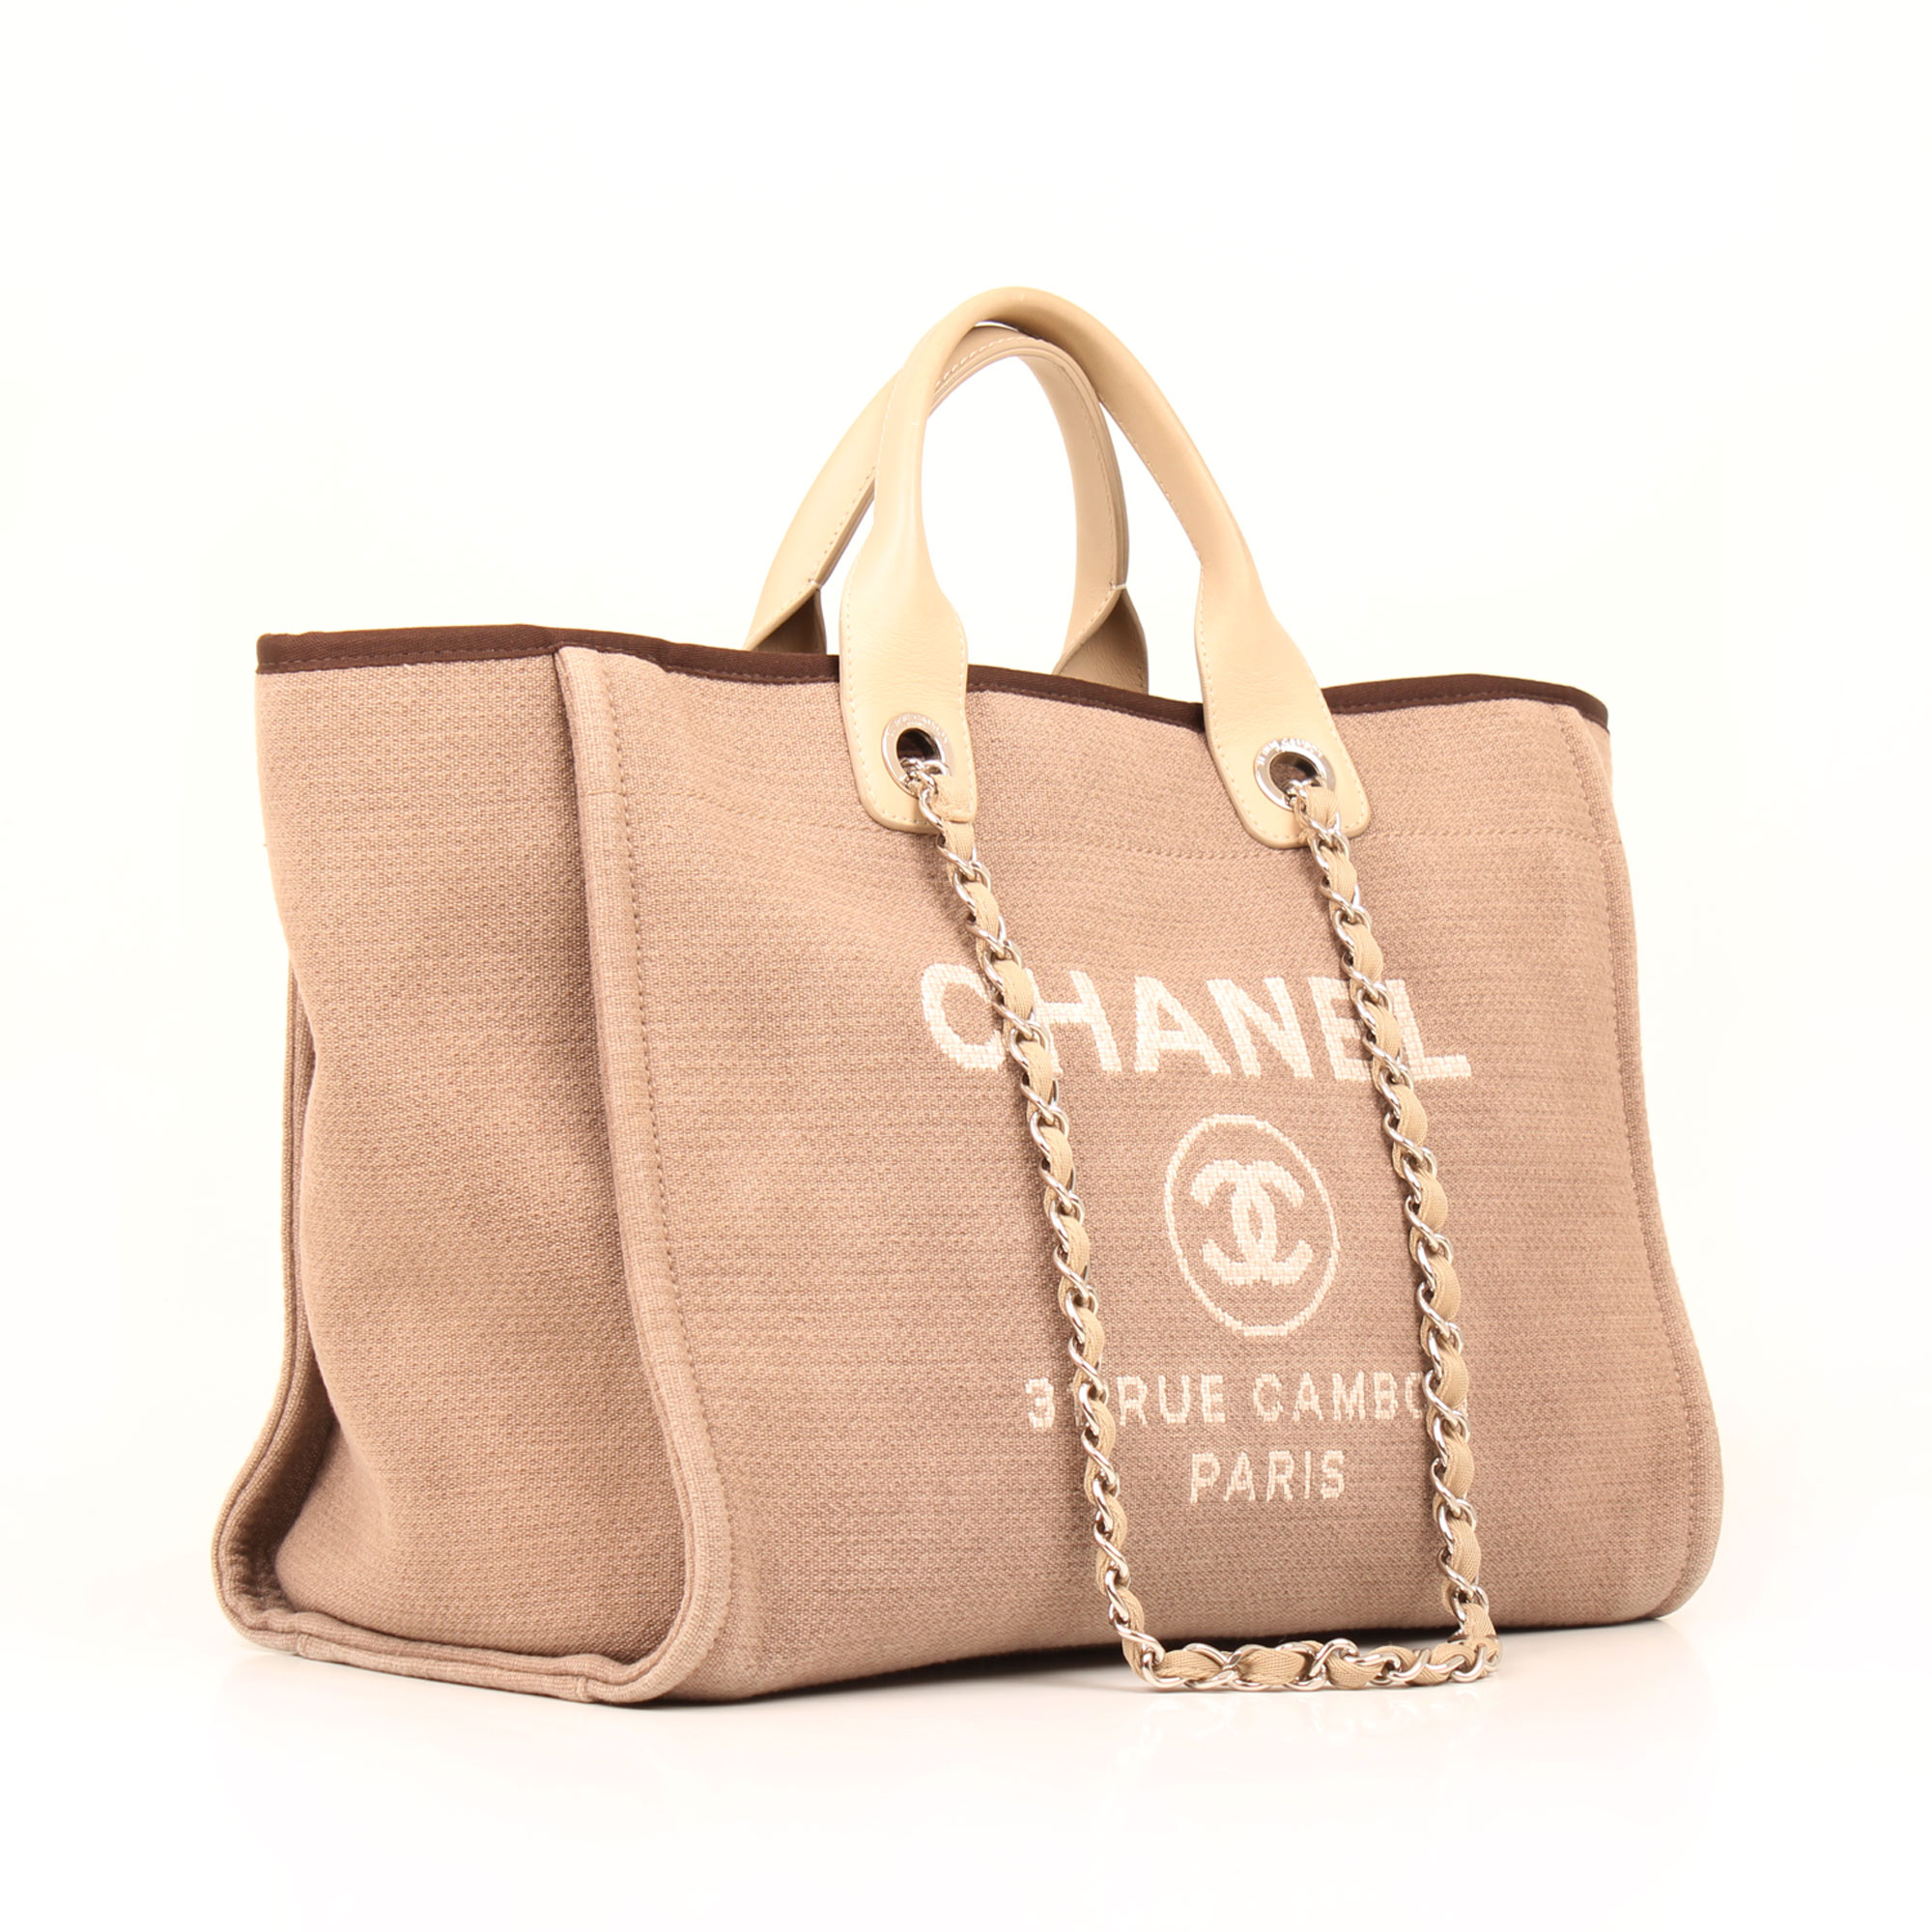 General image of chanel ecru deauville tote bag